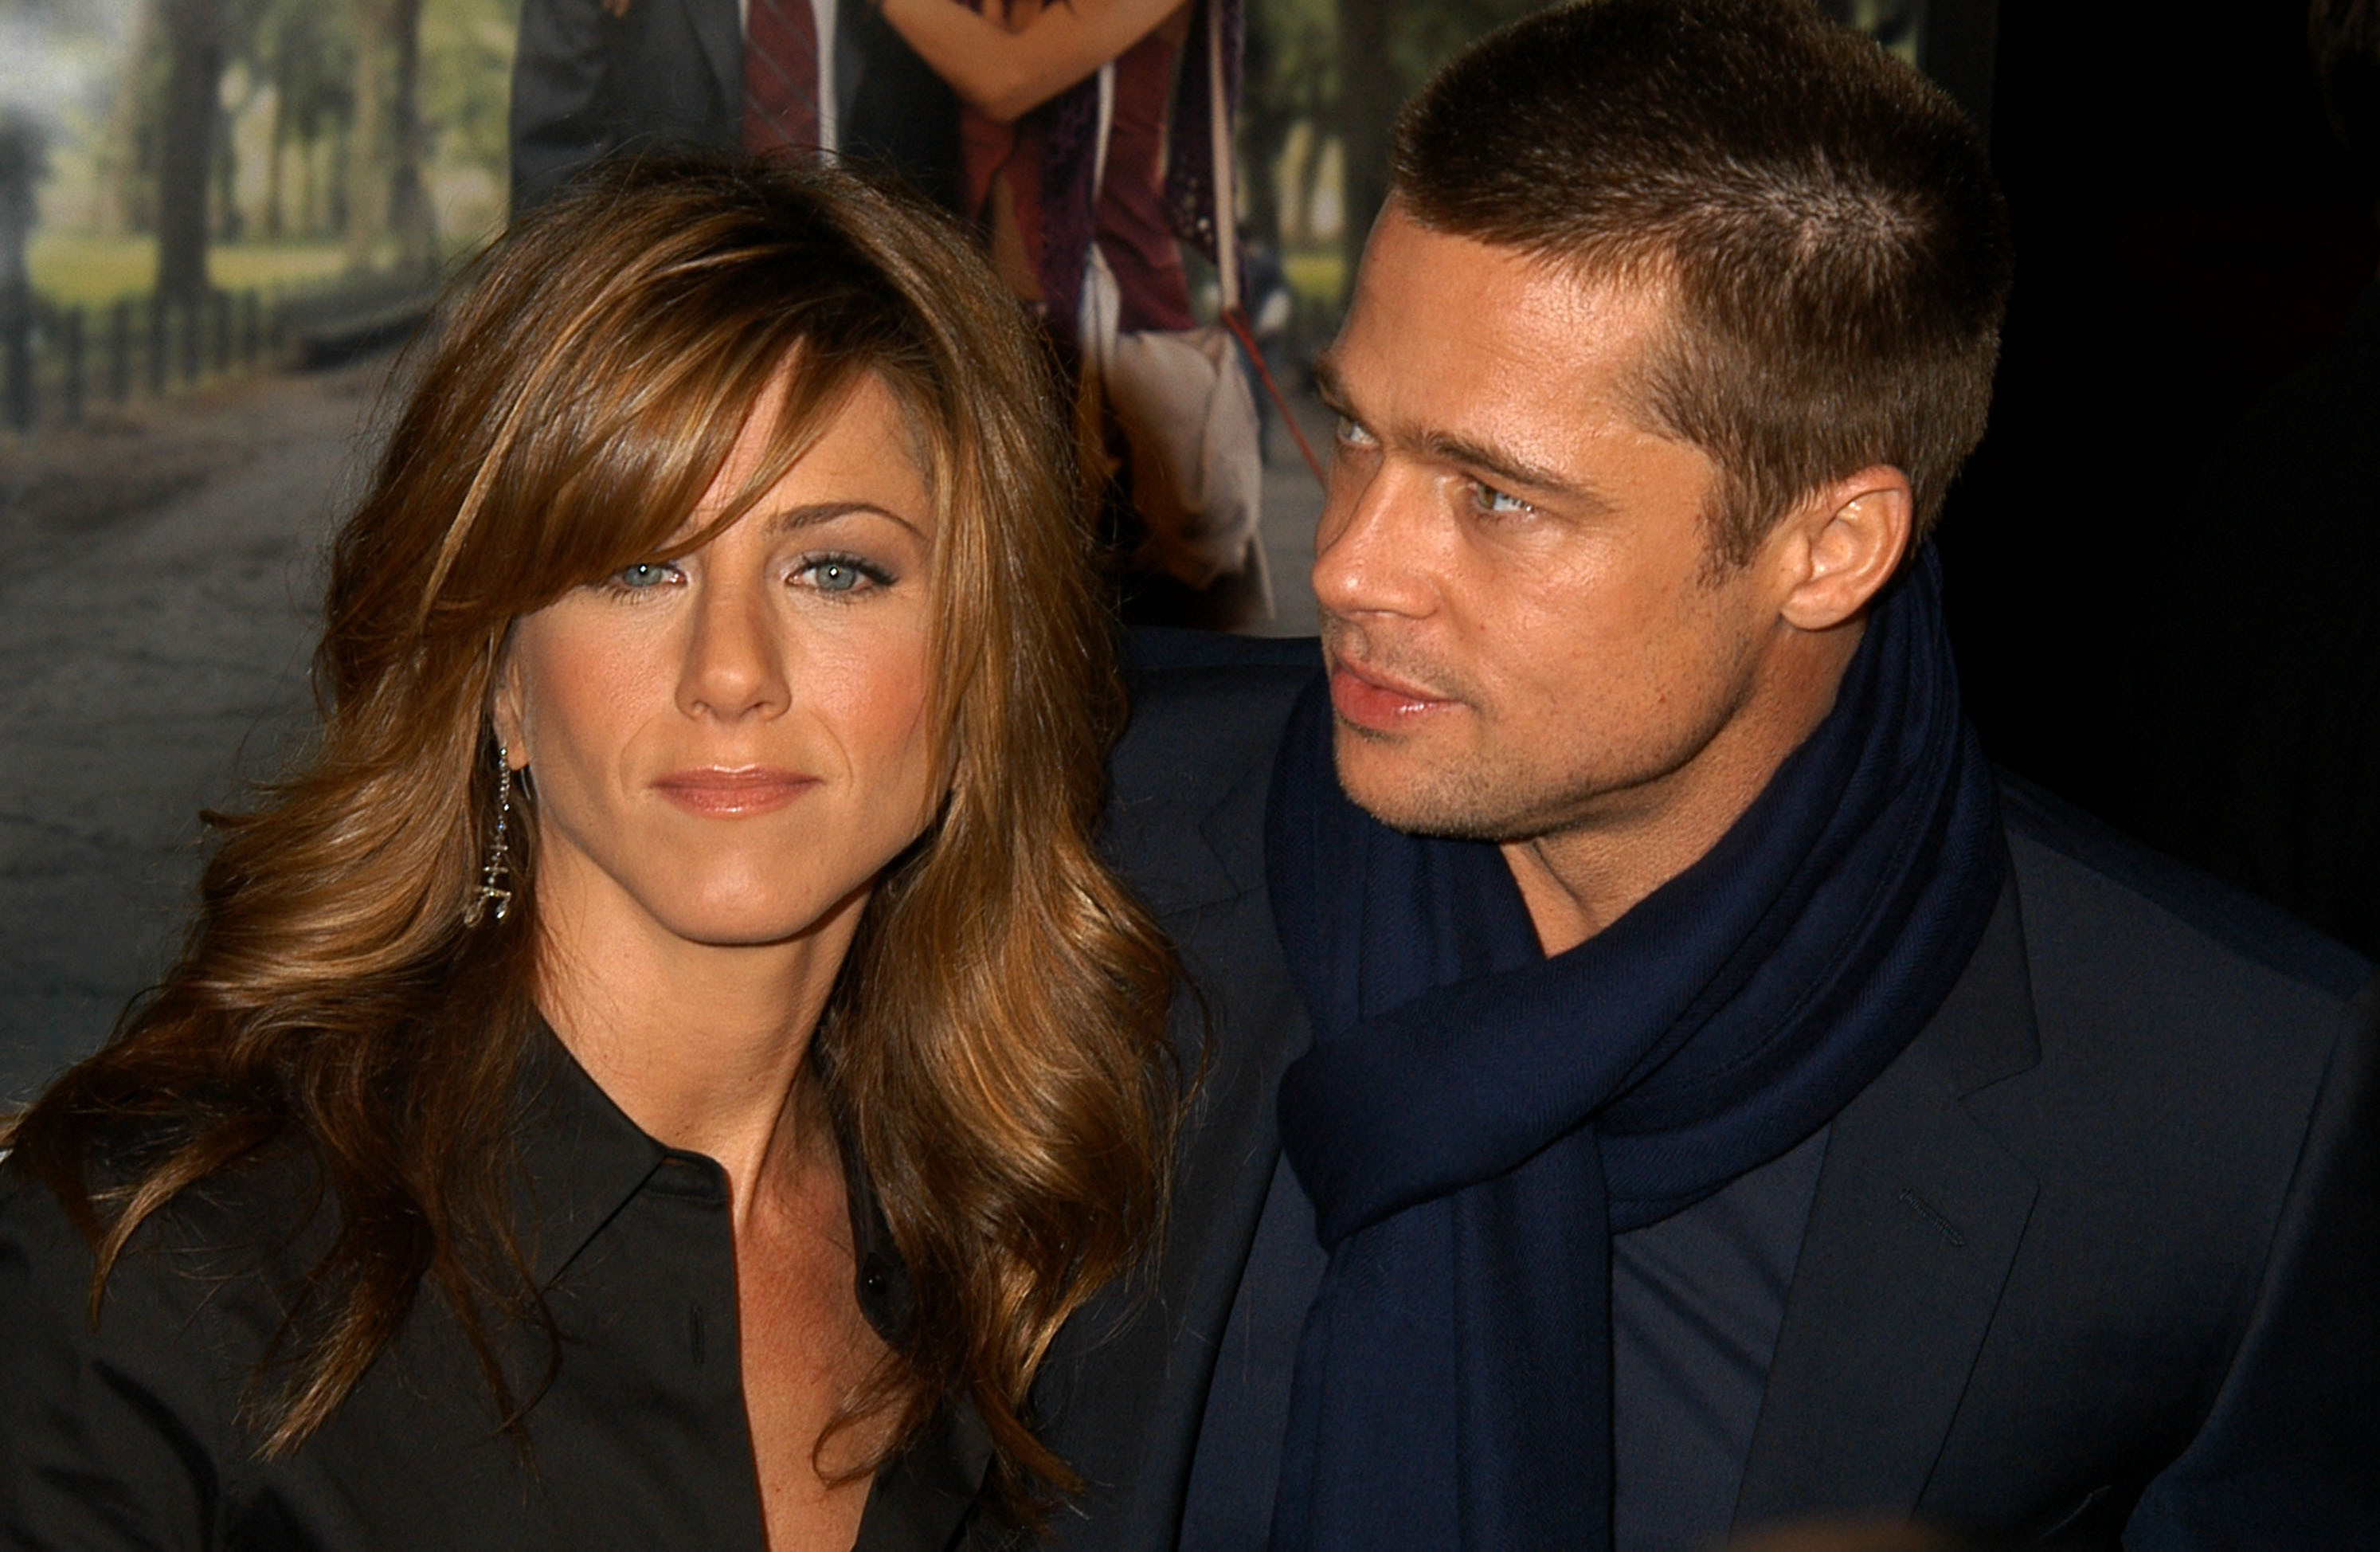 Image result for Leaving Jennifer Aniston, Brad Pitt realizing what the biggest mistake in his life was?? Does it include Angelina Jolie's love?